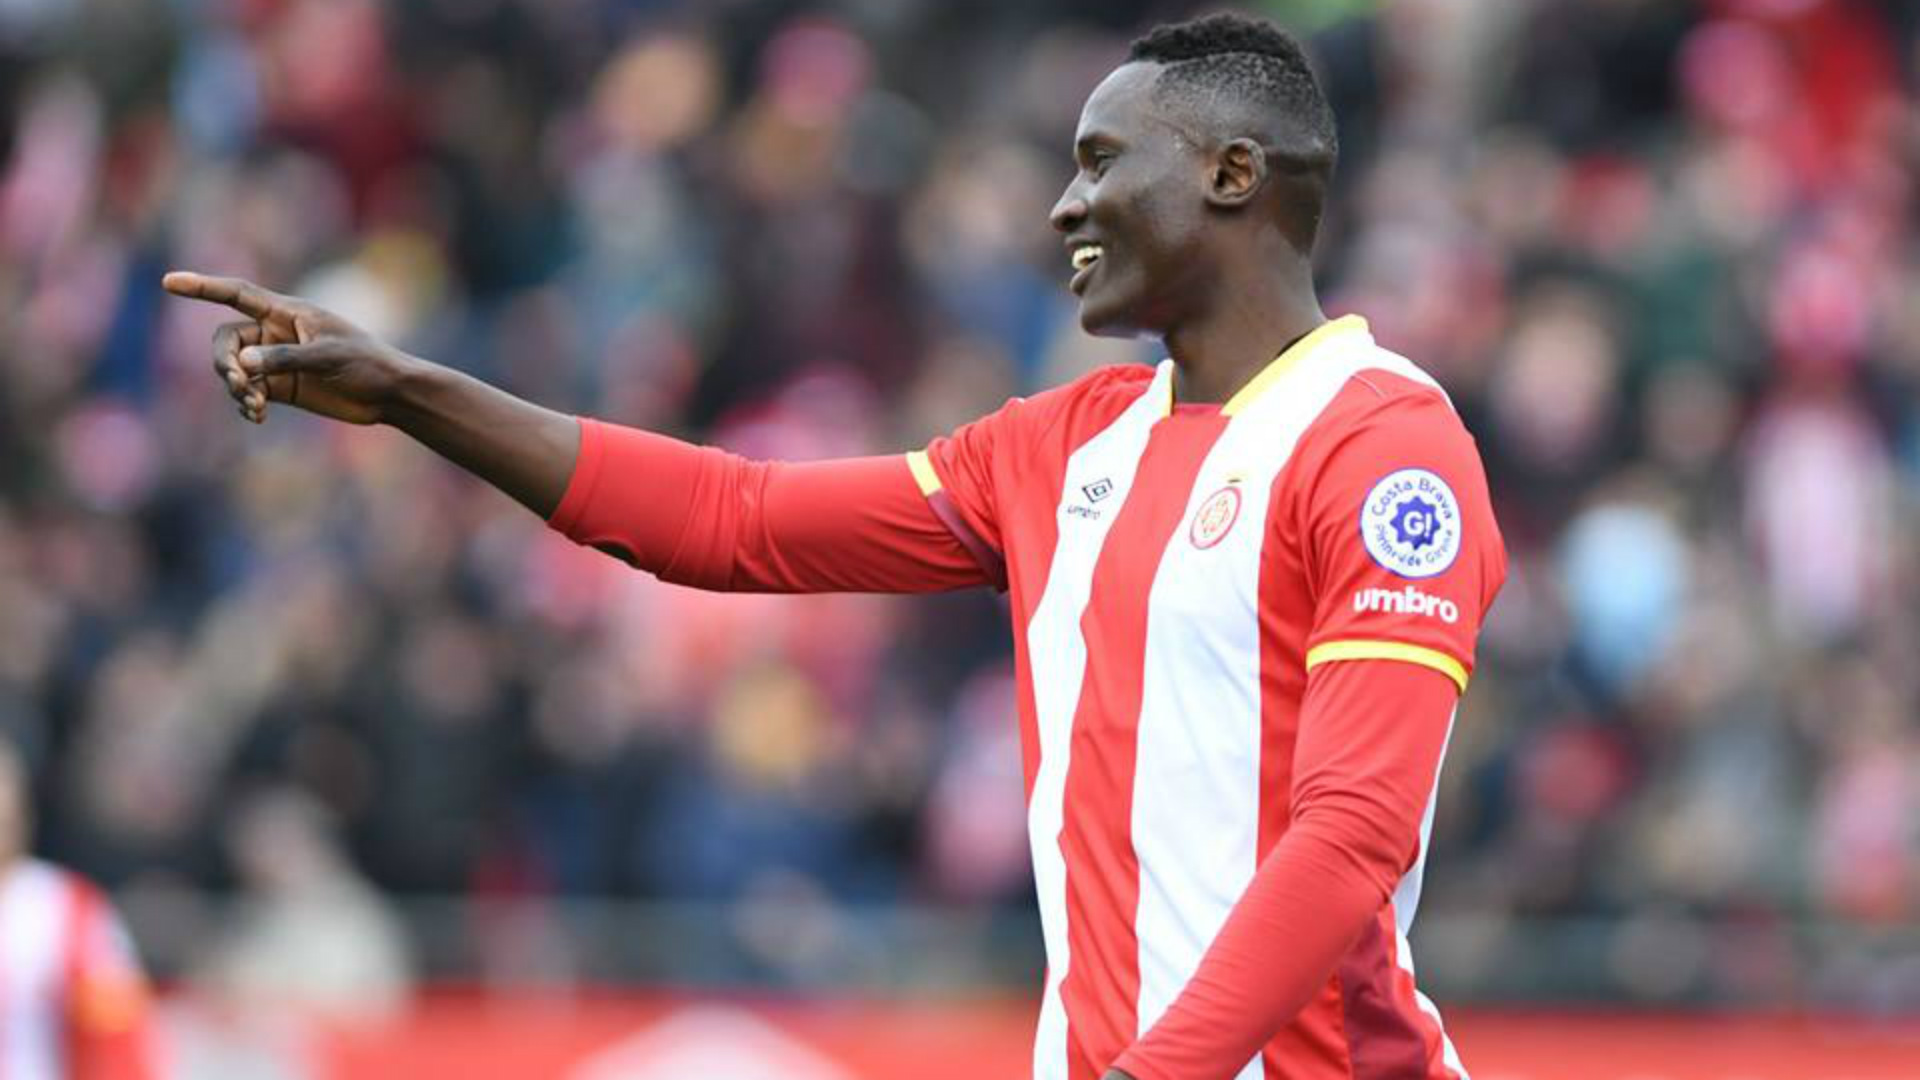 Olunga's agent Isse blames Manchester City and Nigeria's Kayode for Girona frustration